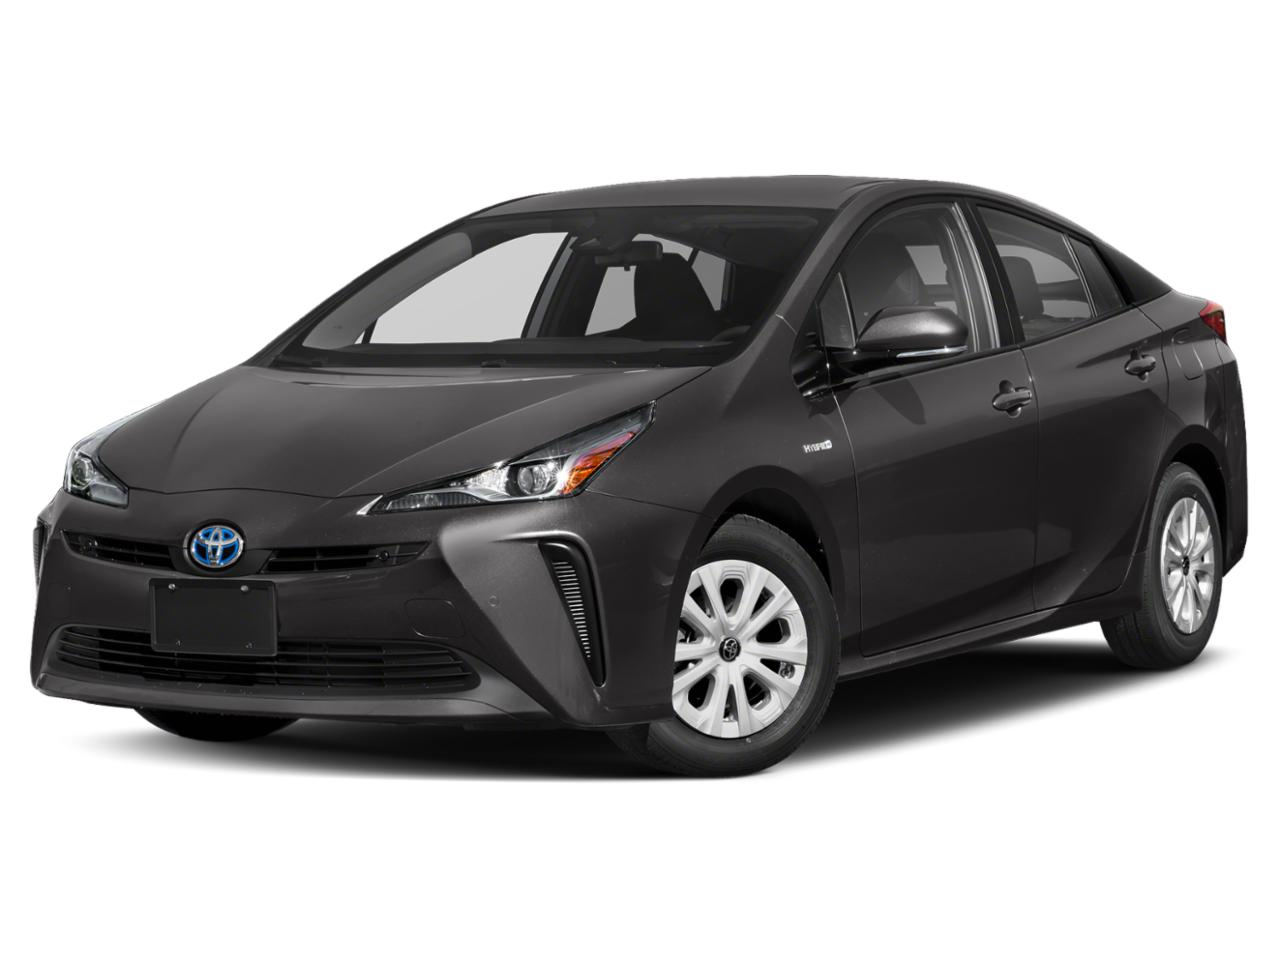 2019 Toyota Prius Vehicle Photo in Lake Katrine, NY 12449